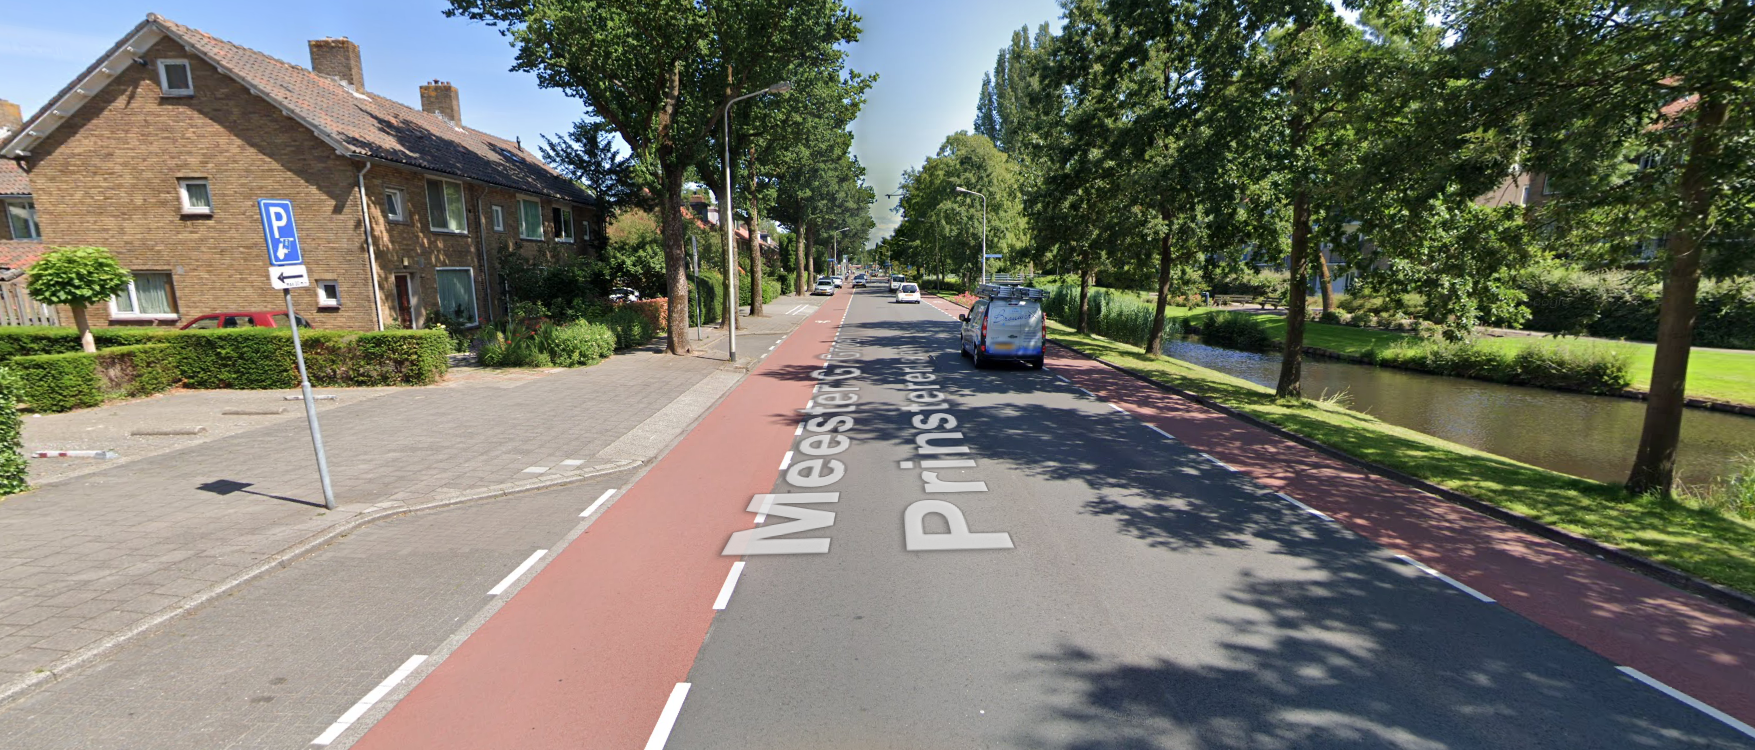 Main road in a suburb featuring bike lanes and the always present canals.